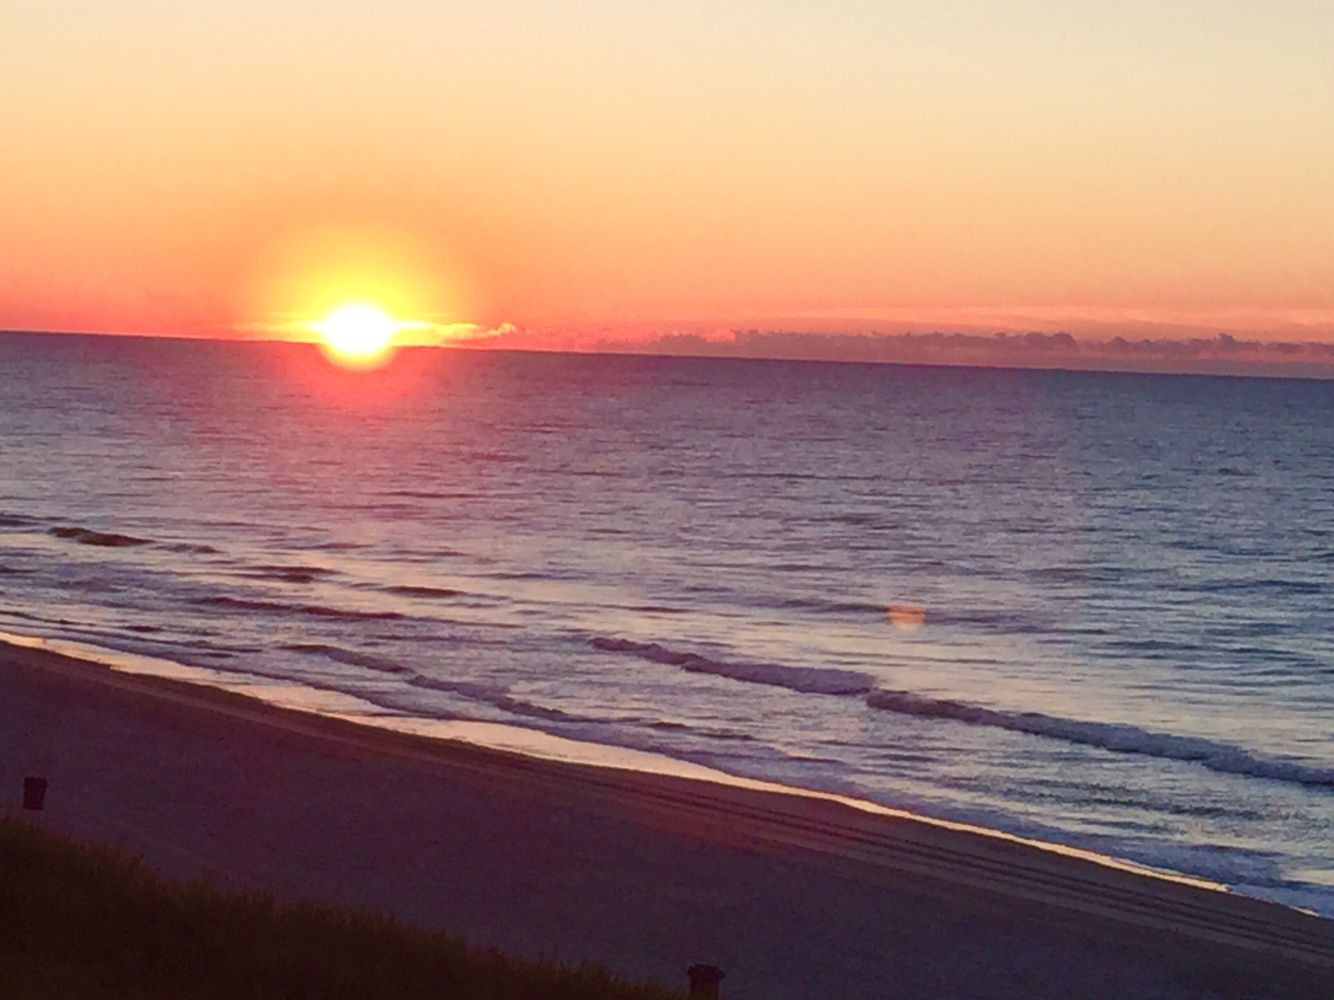 Sunrise over the Atlantic from our 5 th floor balcony, Water Pointe1 in North Myrtle Beach,SC.